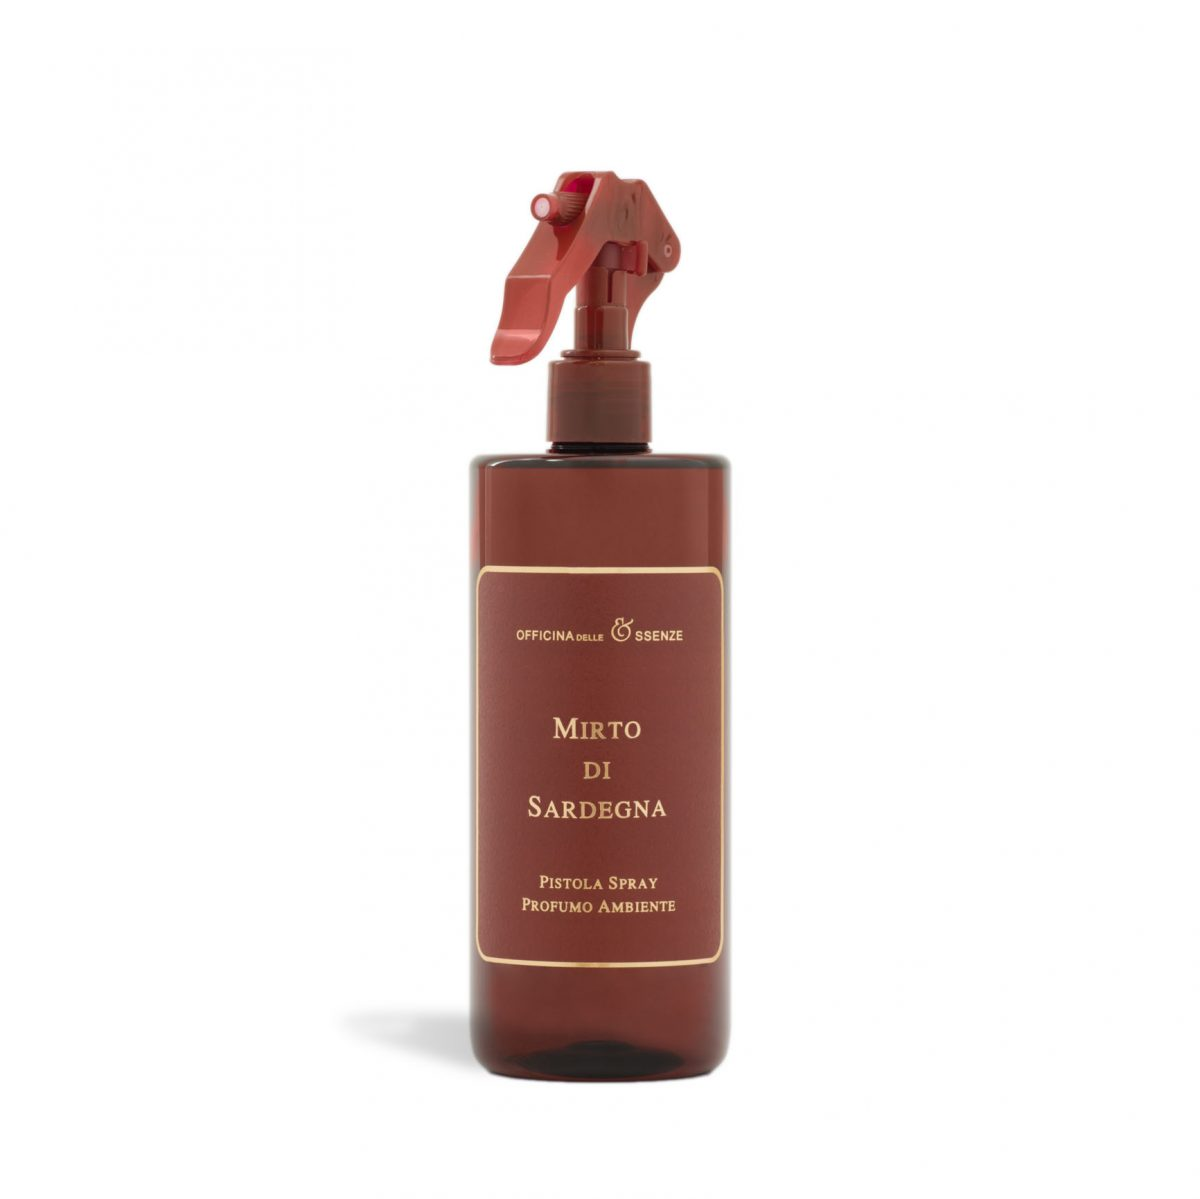 Mirto di Sardegna - Room spray with essential oils, 500 ml